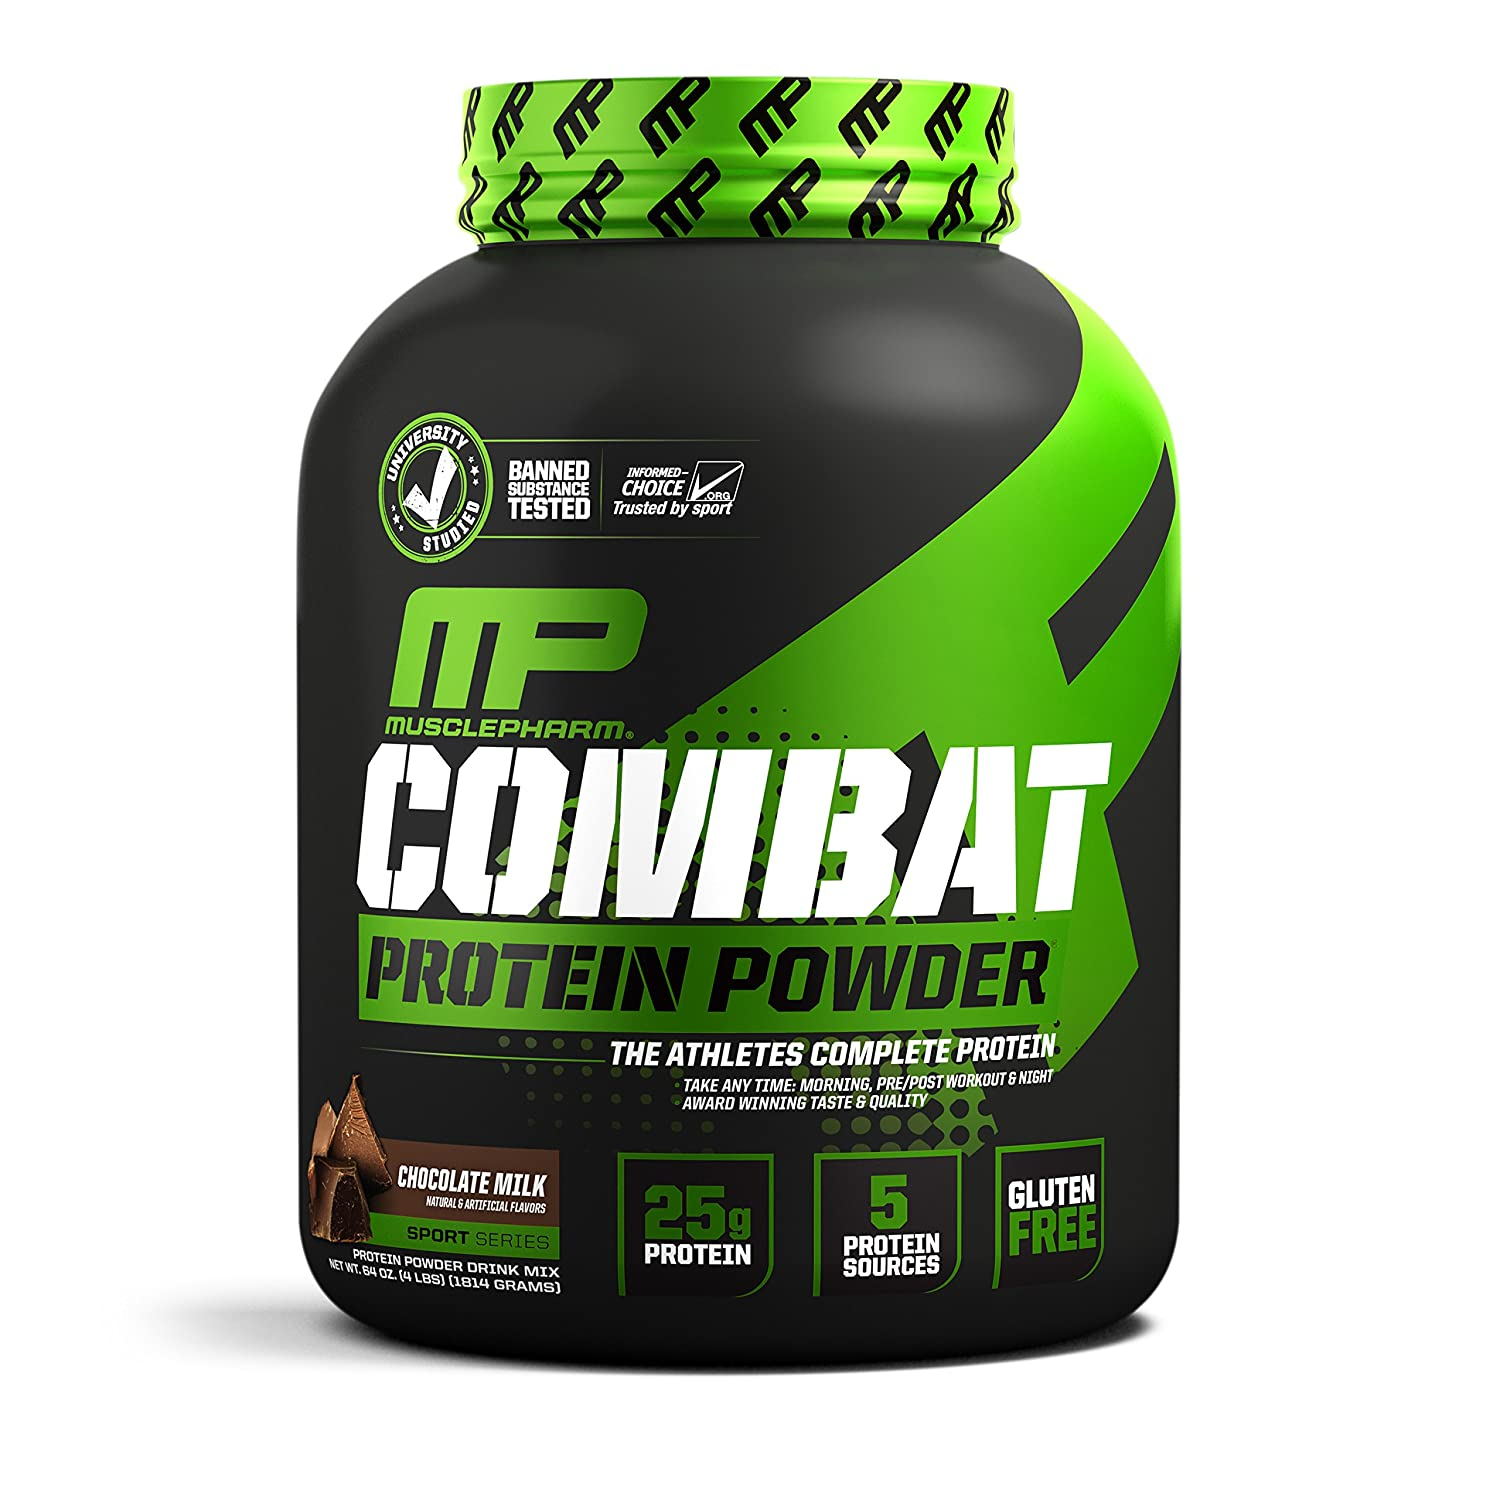 Top 5 Best Cheap Protein Powders Reviews in 2020 5